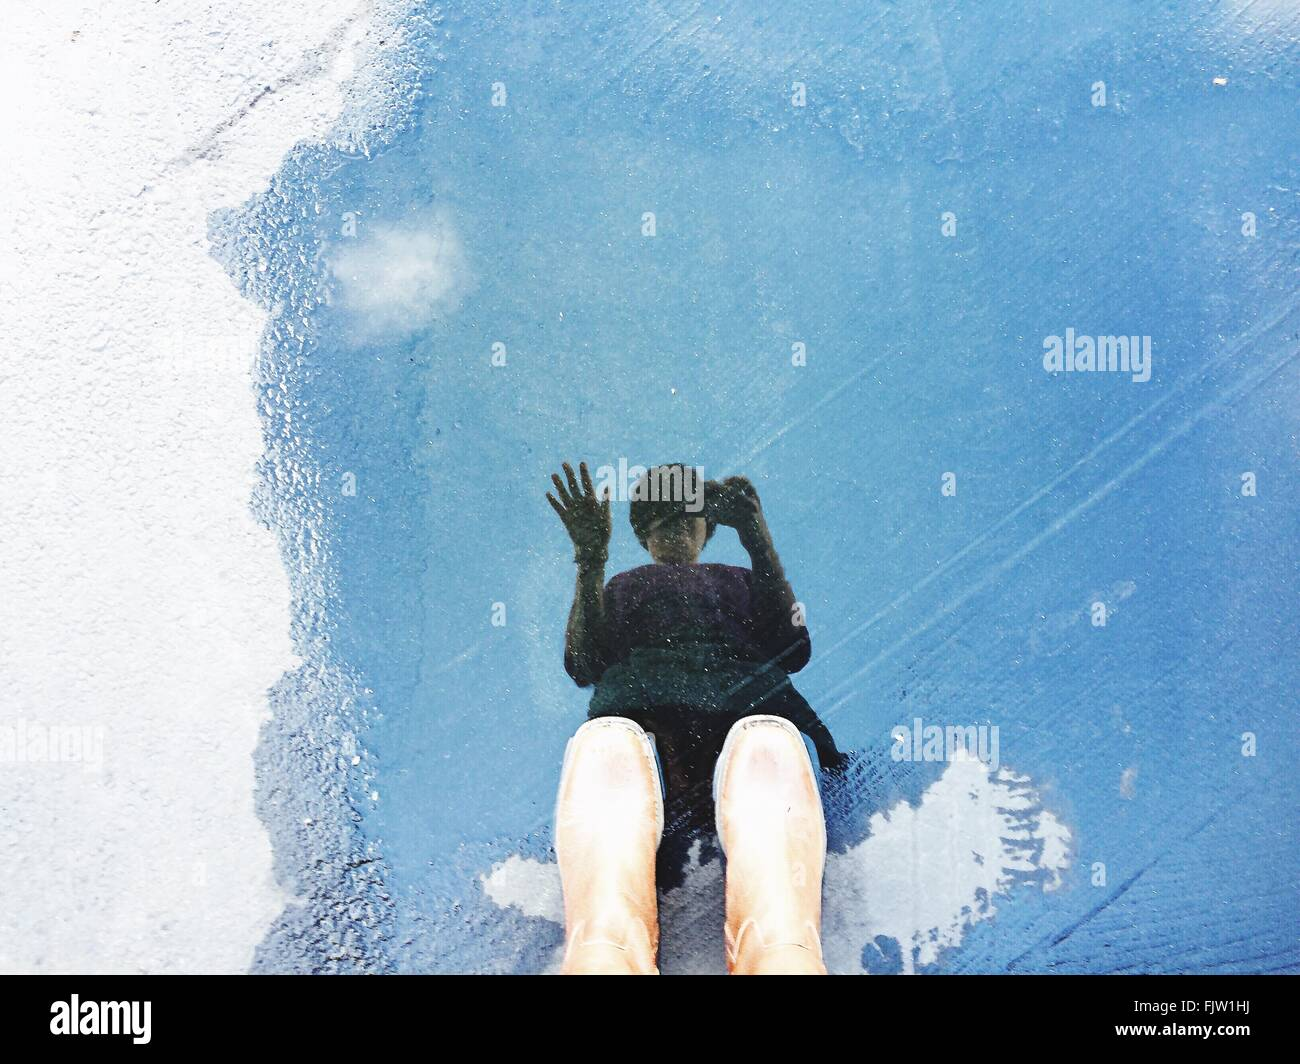 Reflection Of Person In Water - Stock Image